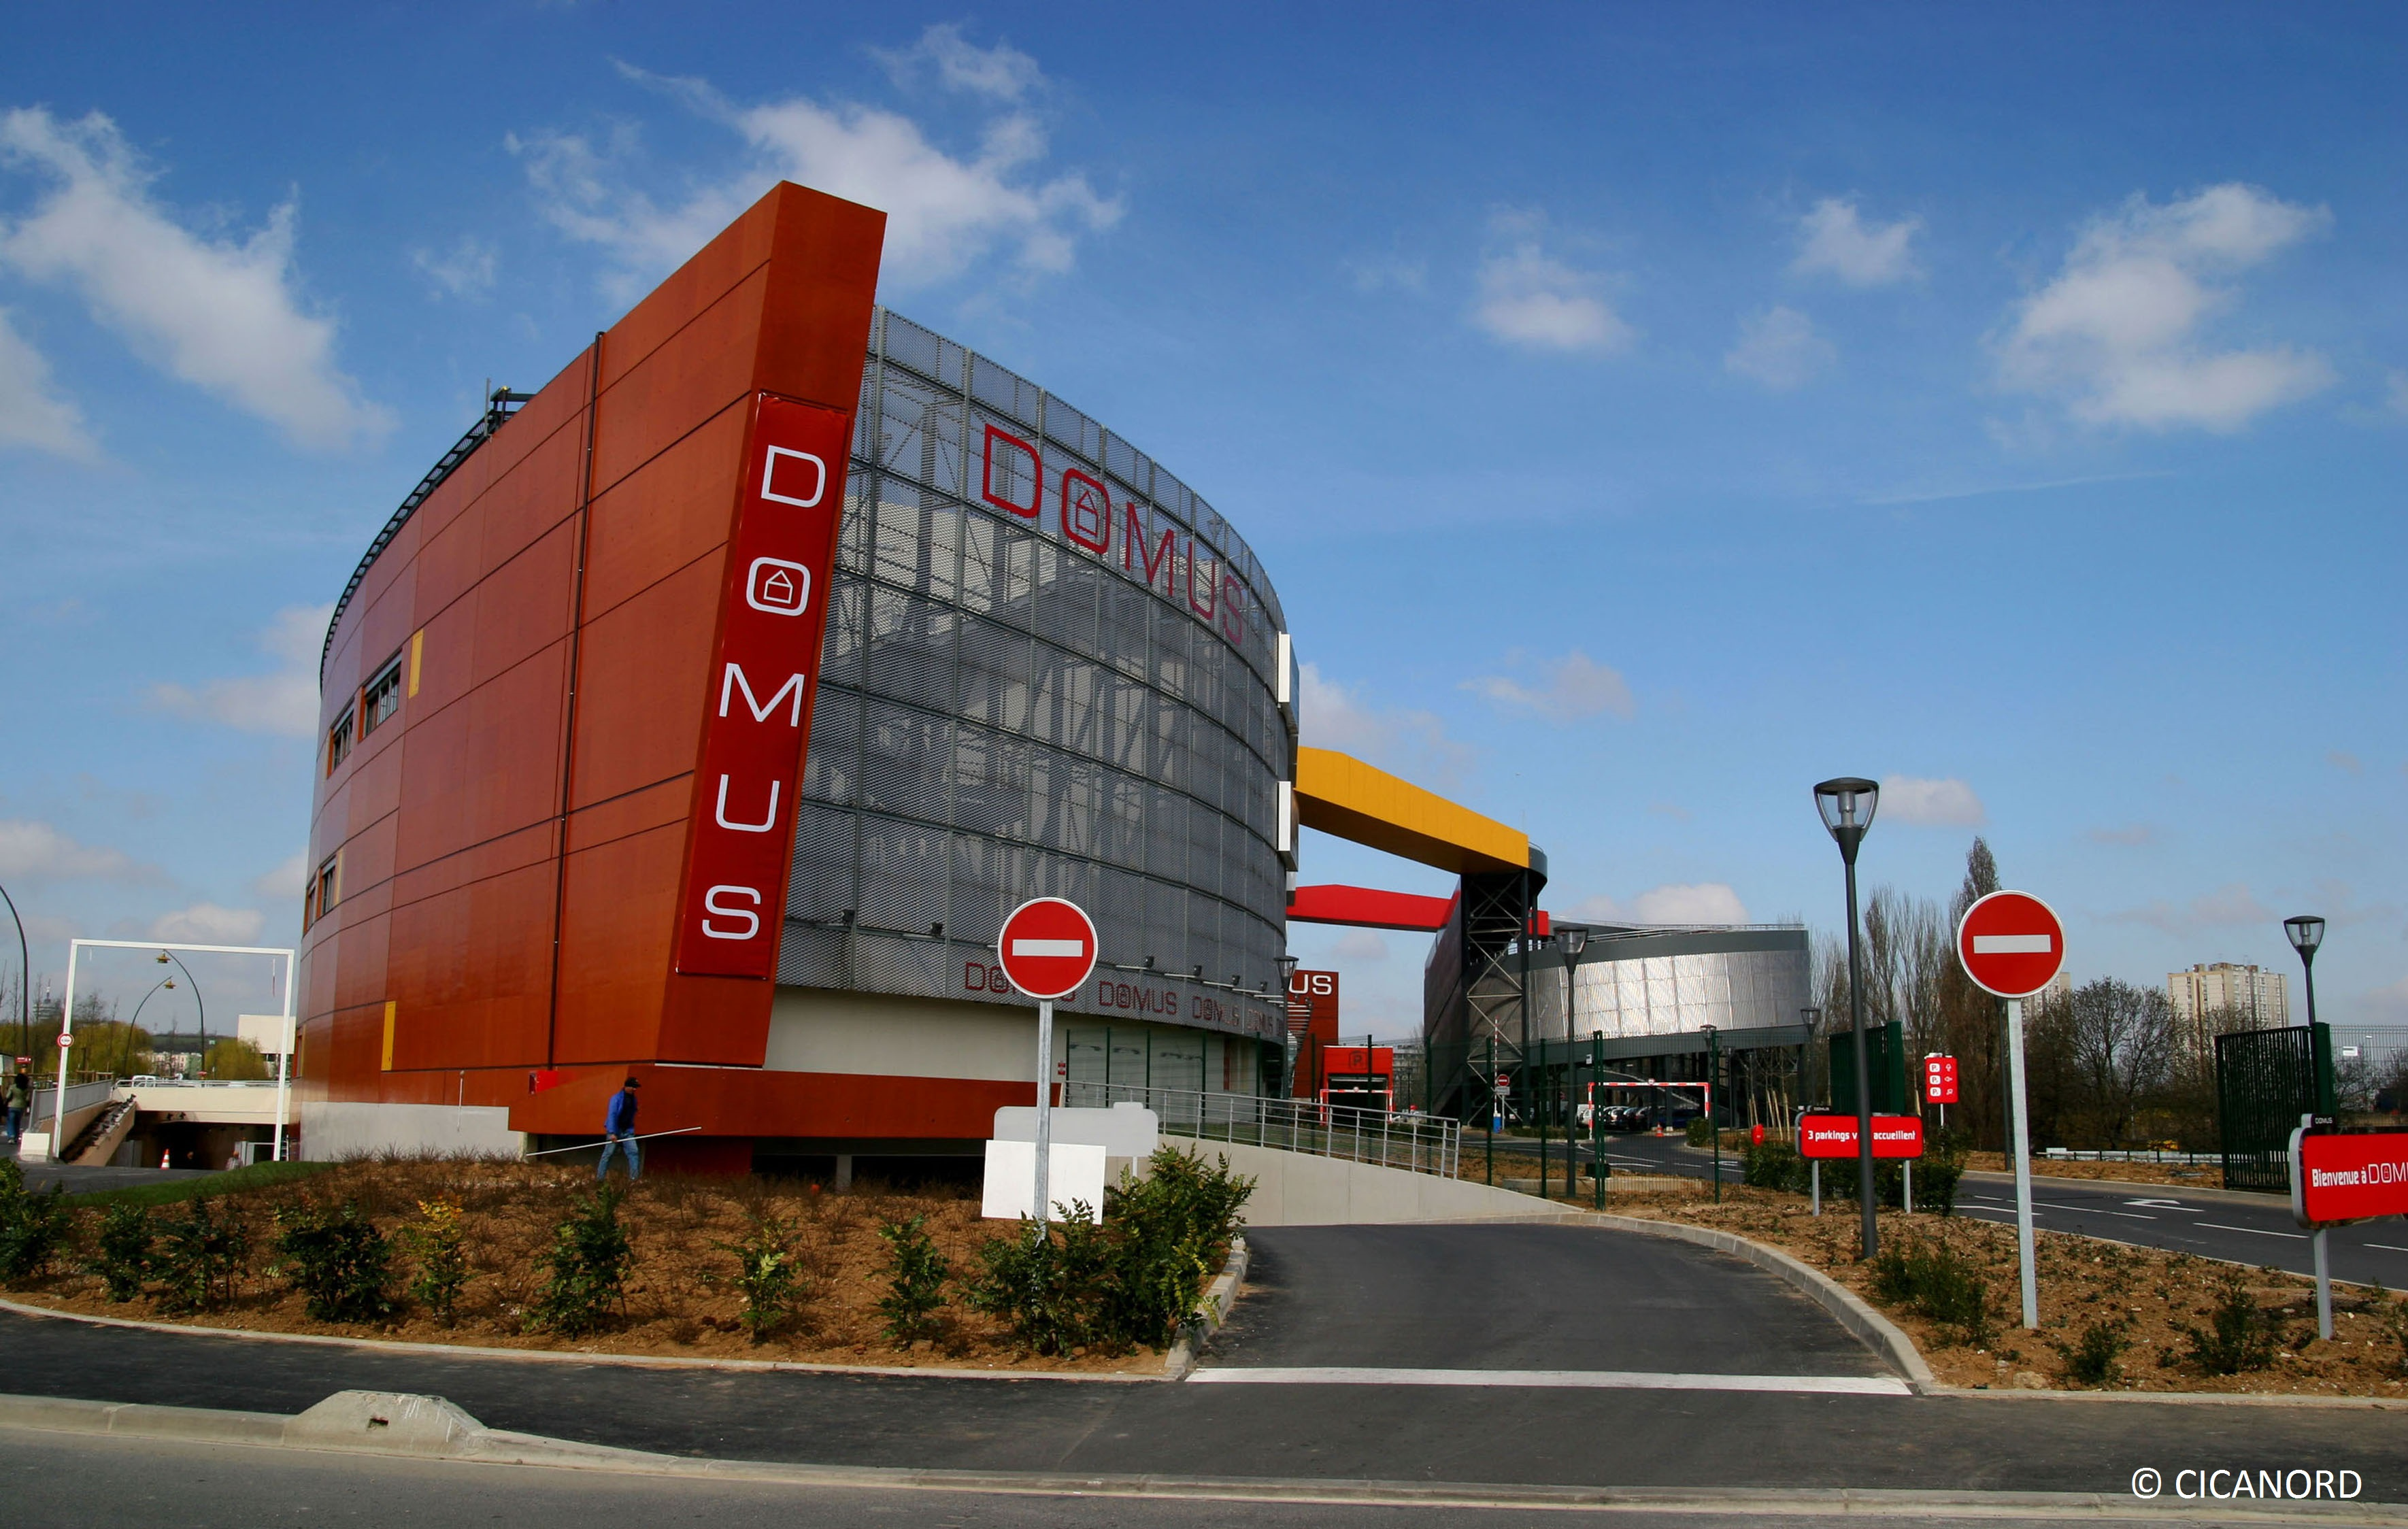 Centre commercial domus rosny sous bois cicanord for Parking exterieur paris